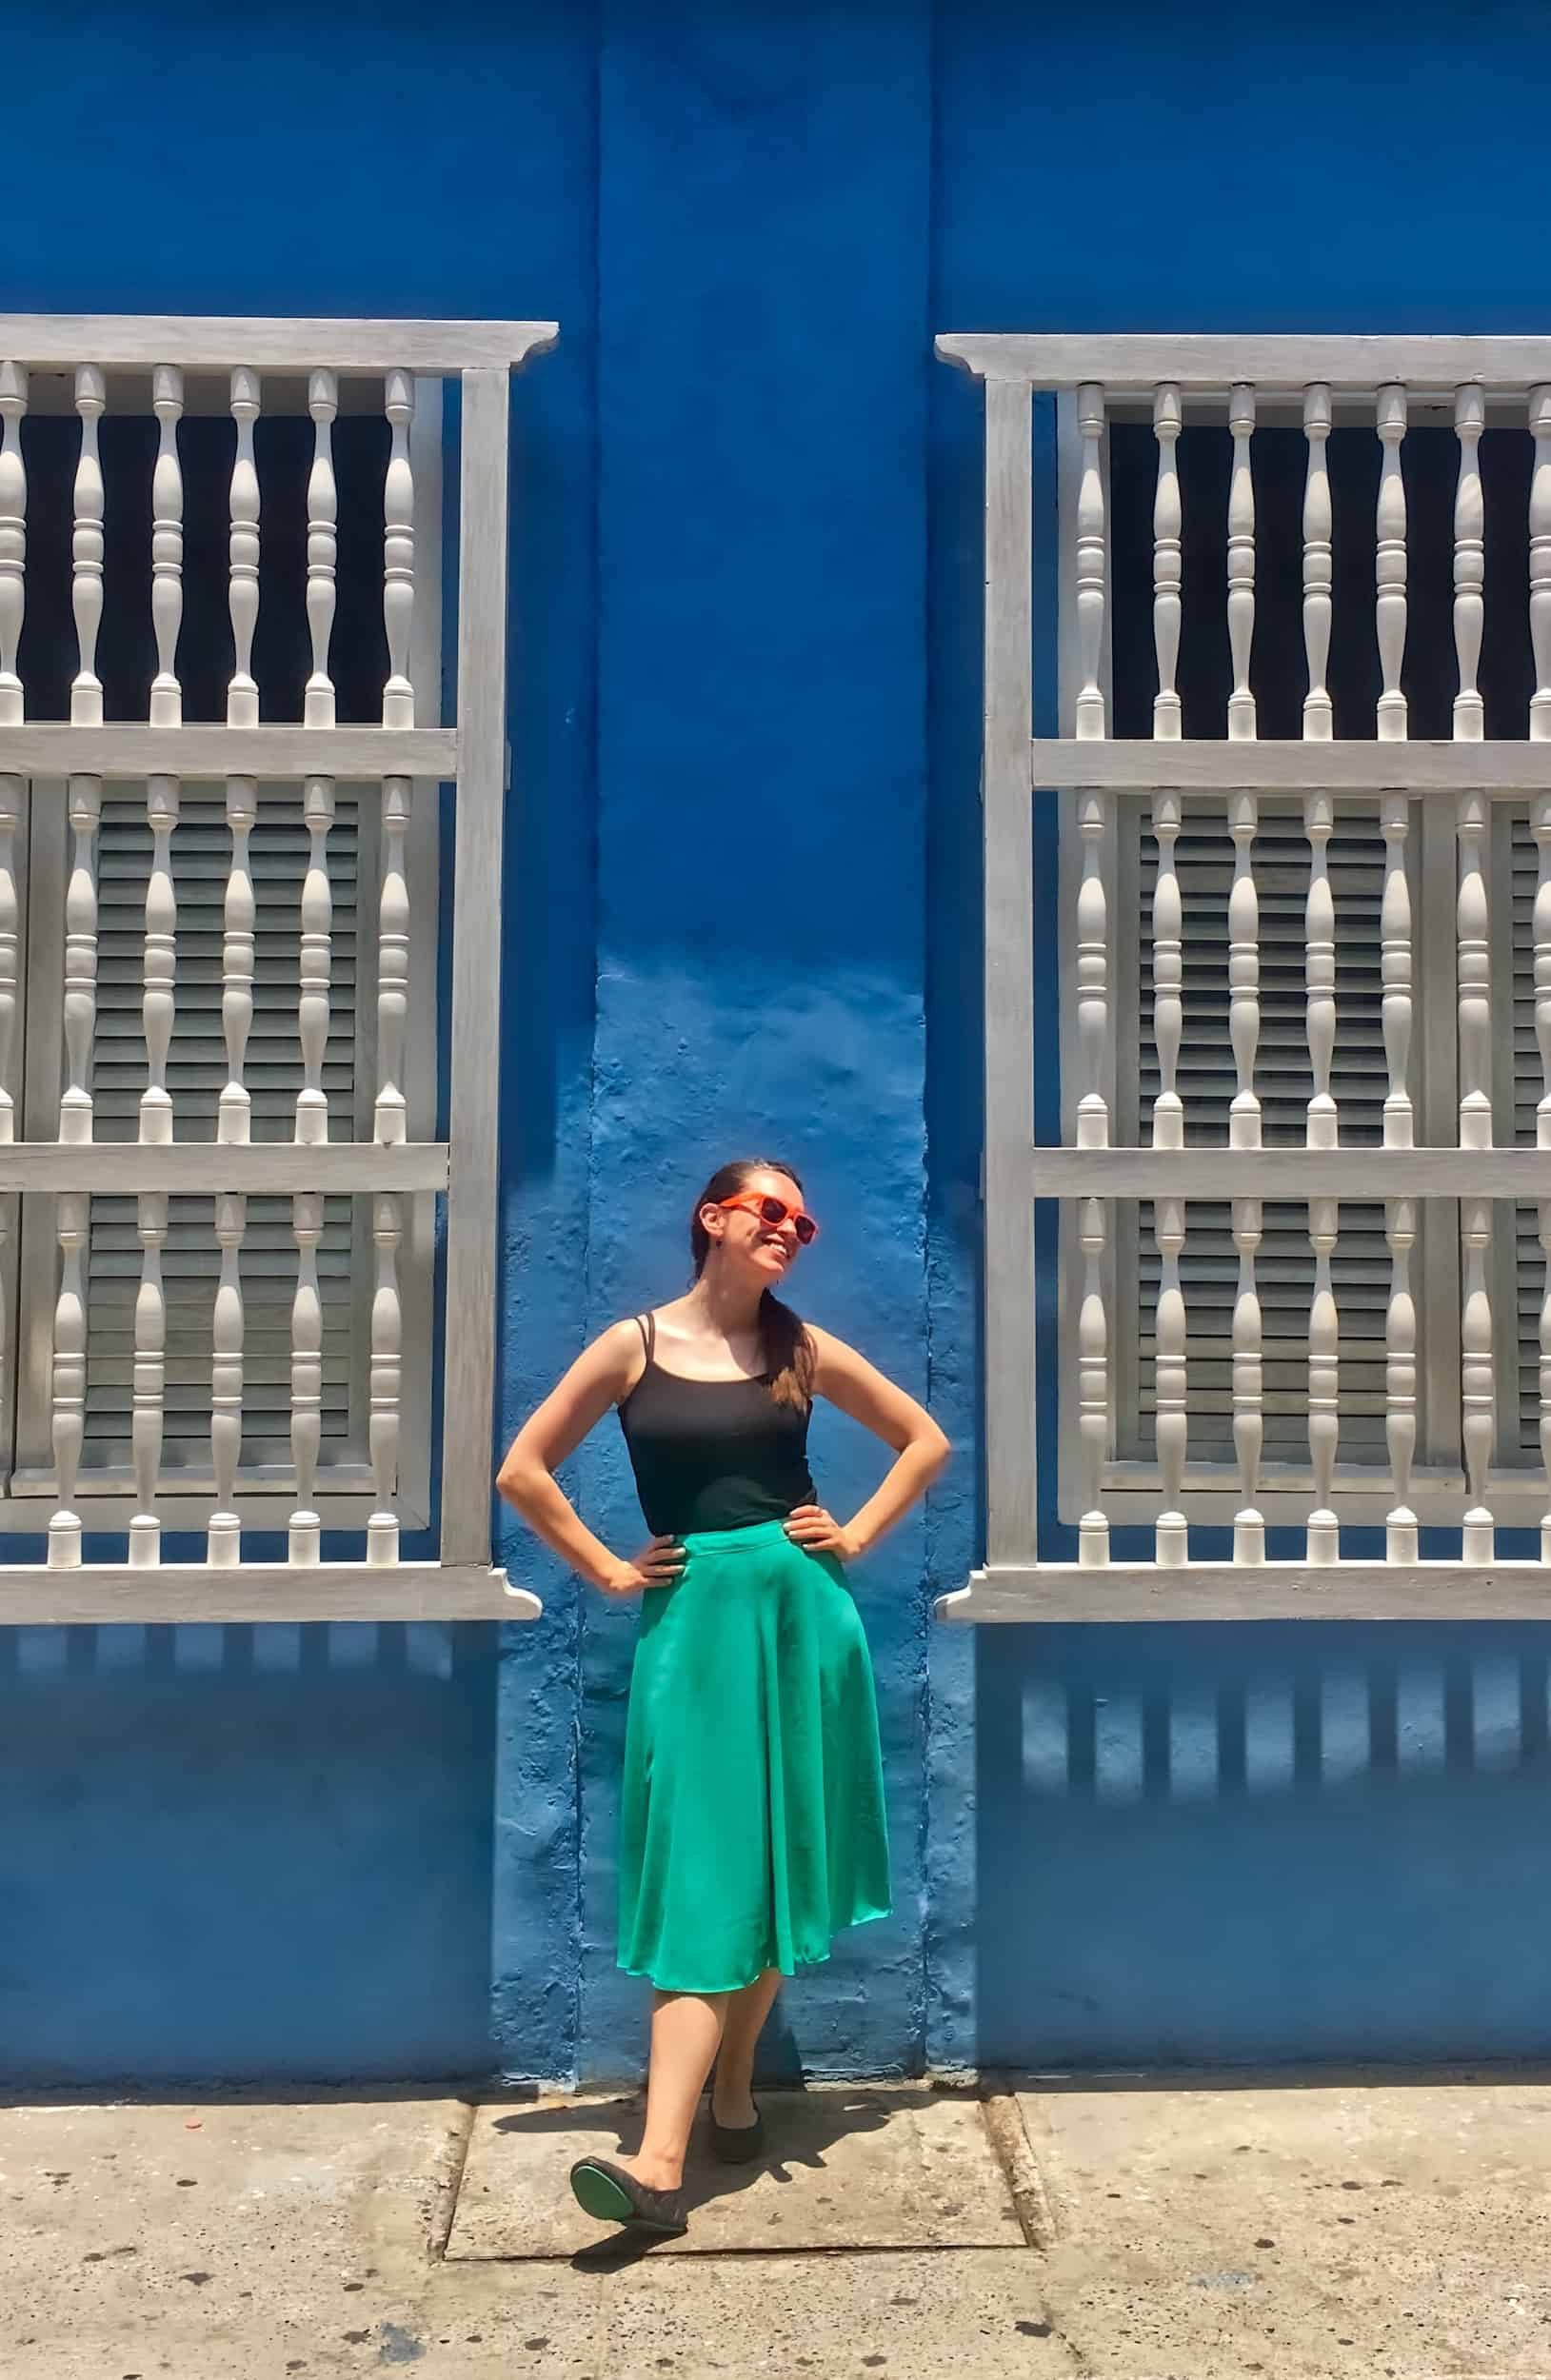 Cartagena Walking Tour - Valerie in front of blue wall